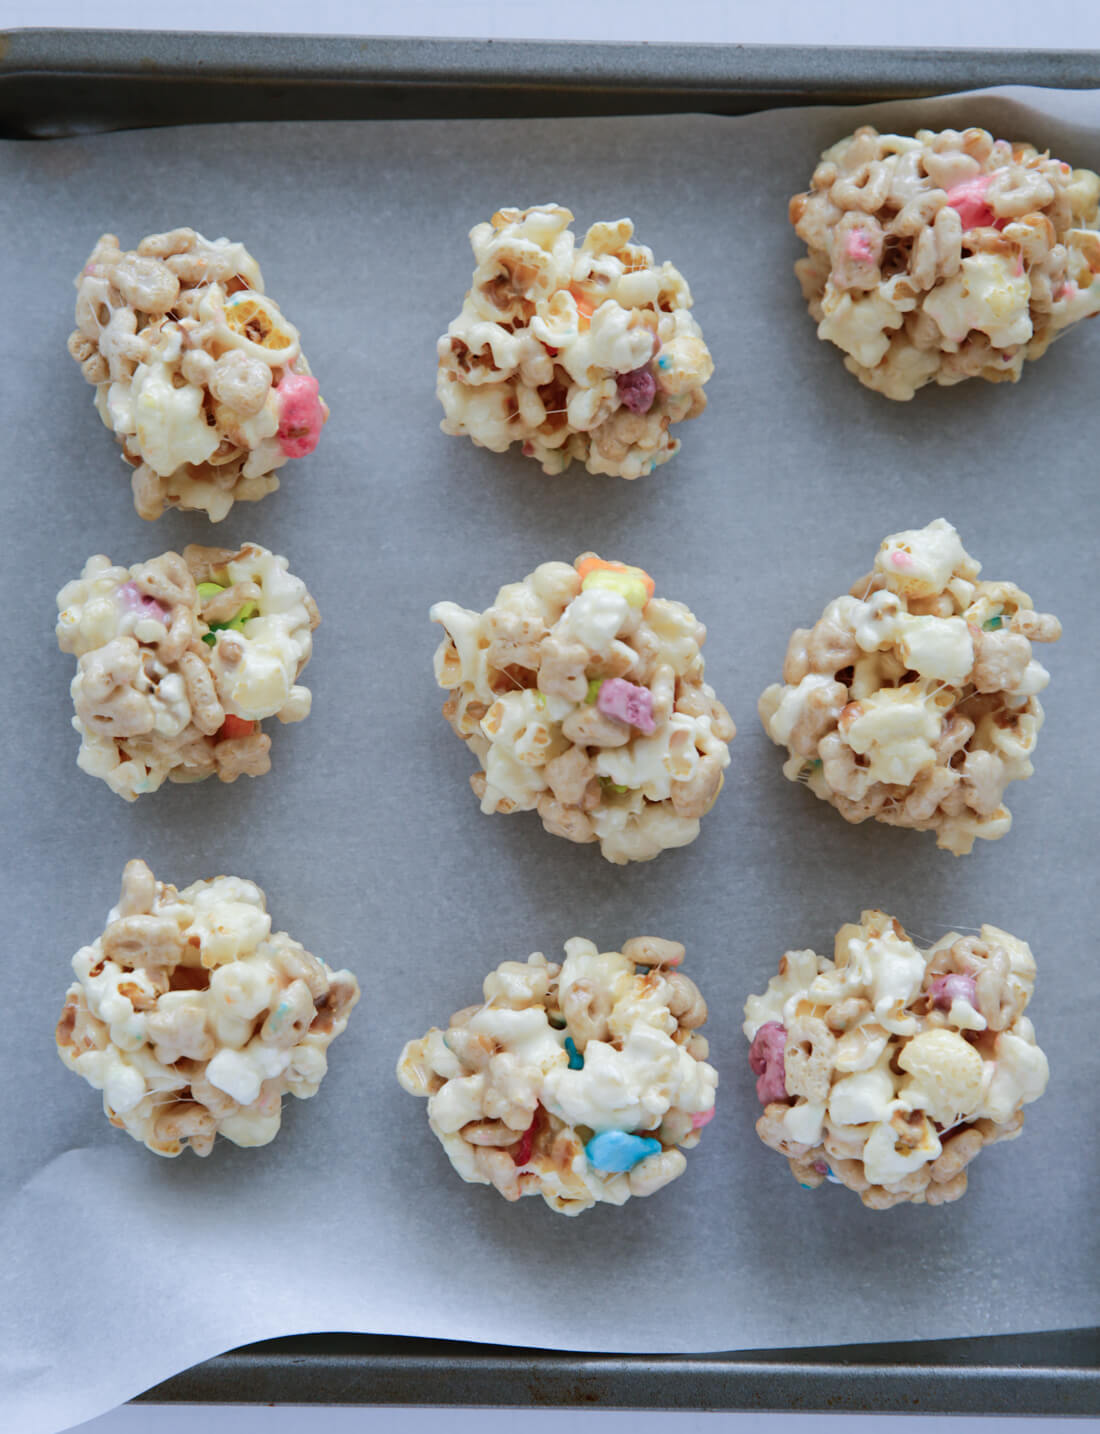 How to make popcorn balls - put on parchment paper